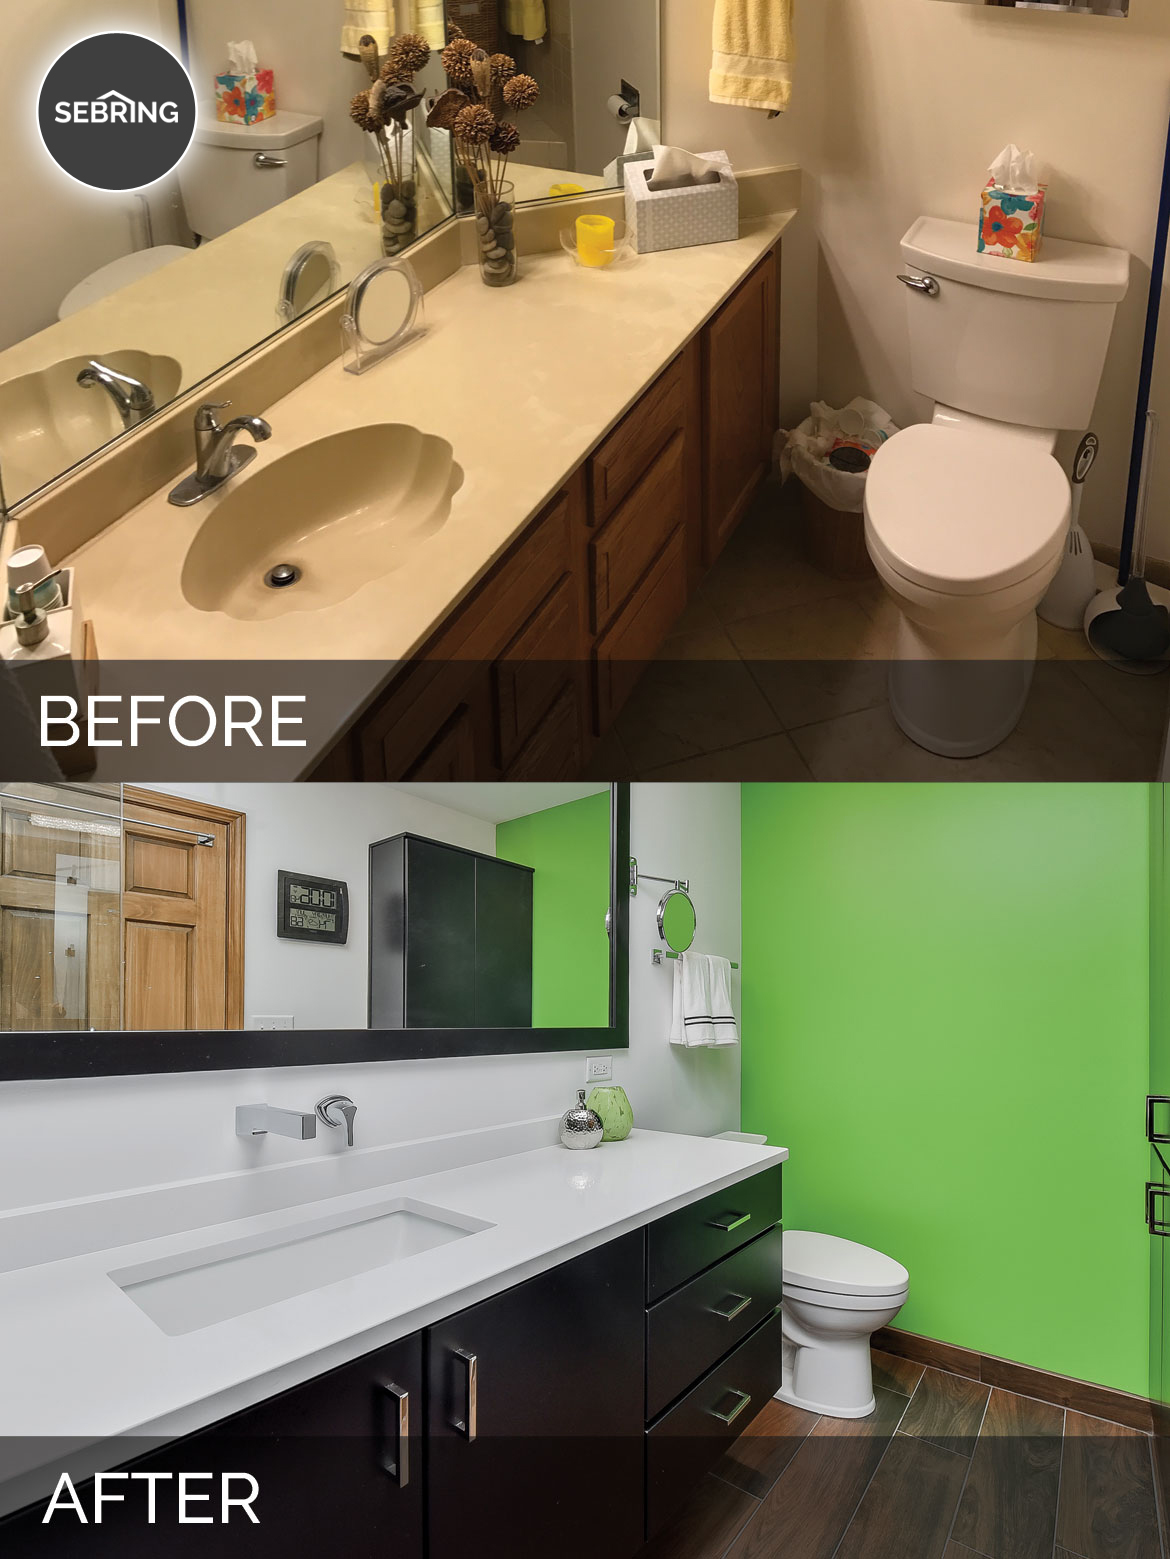 Clay amp Mias Master Bathroom Before After Pictures